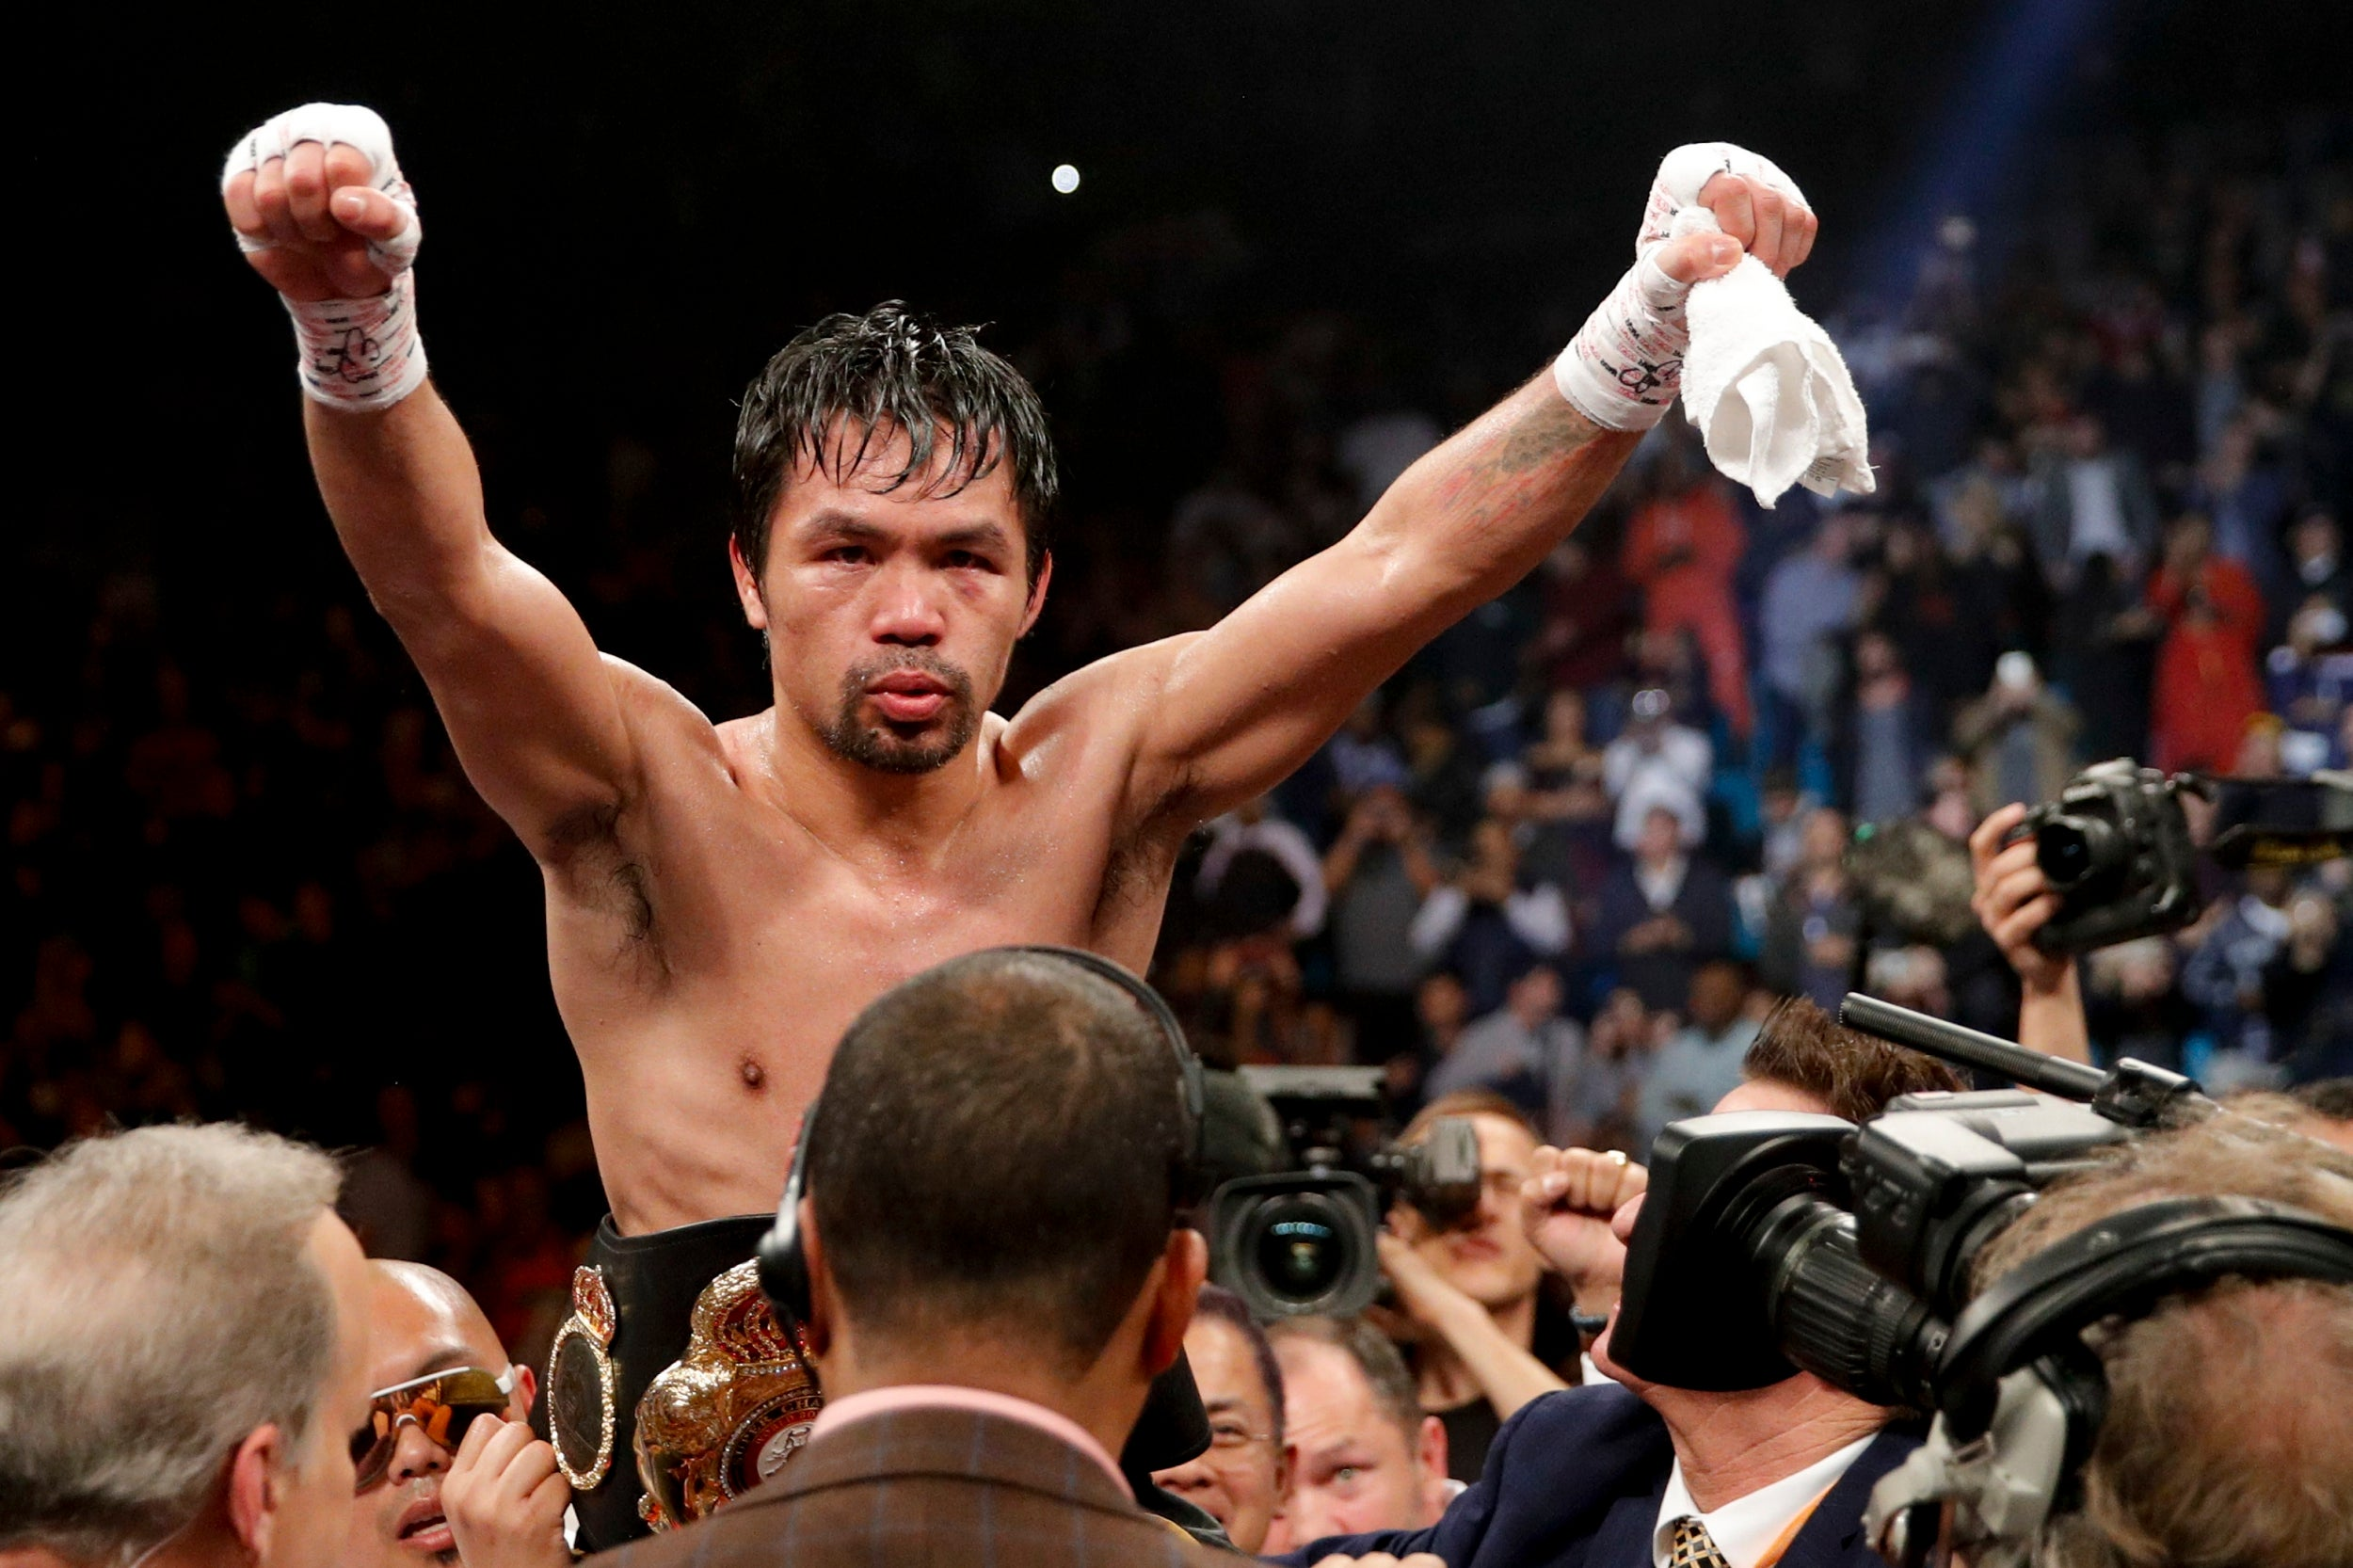 Manny Pacquiao vs Keith Thurman - Odds, Schedule and streaming options